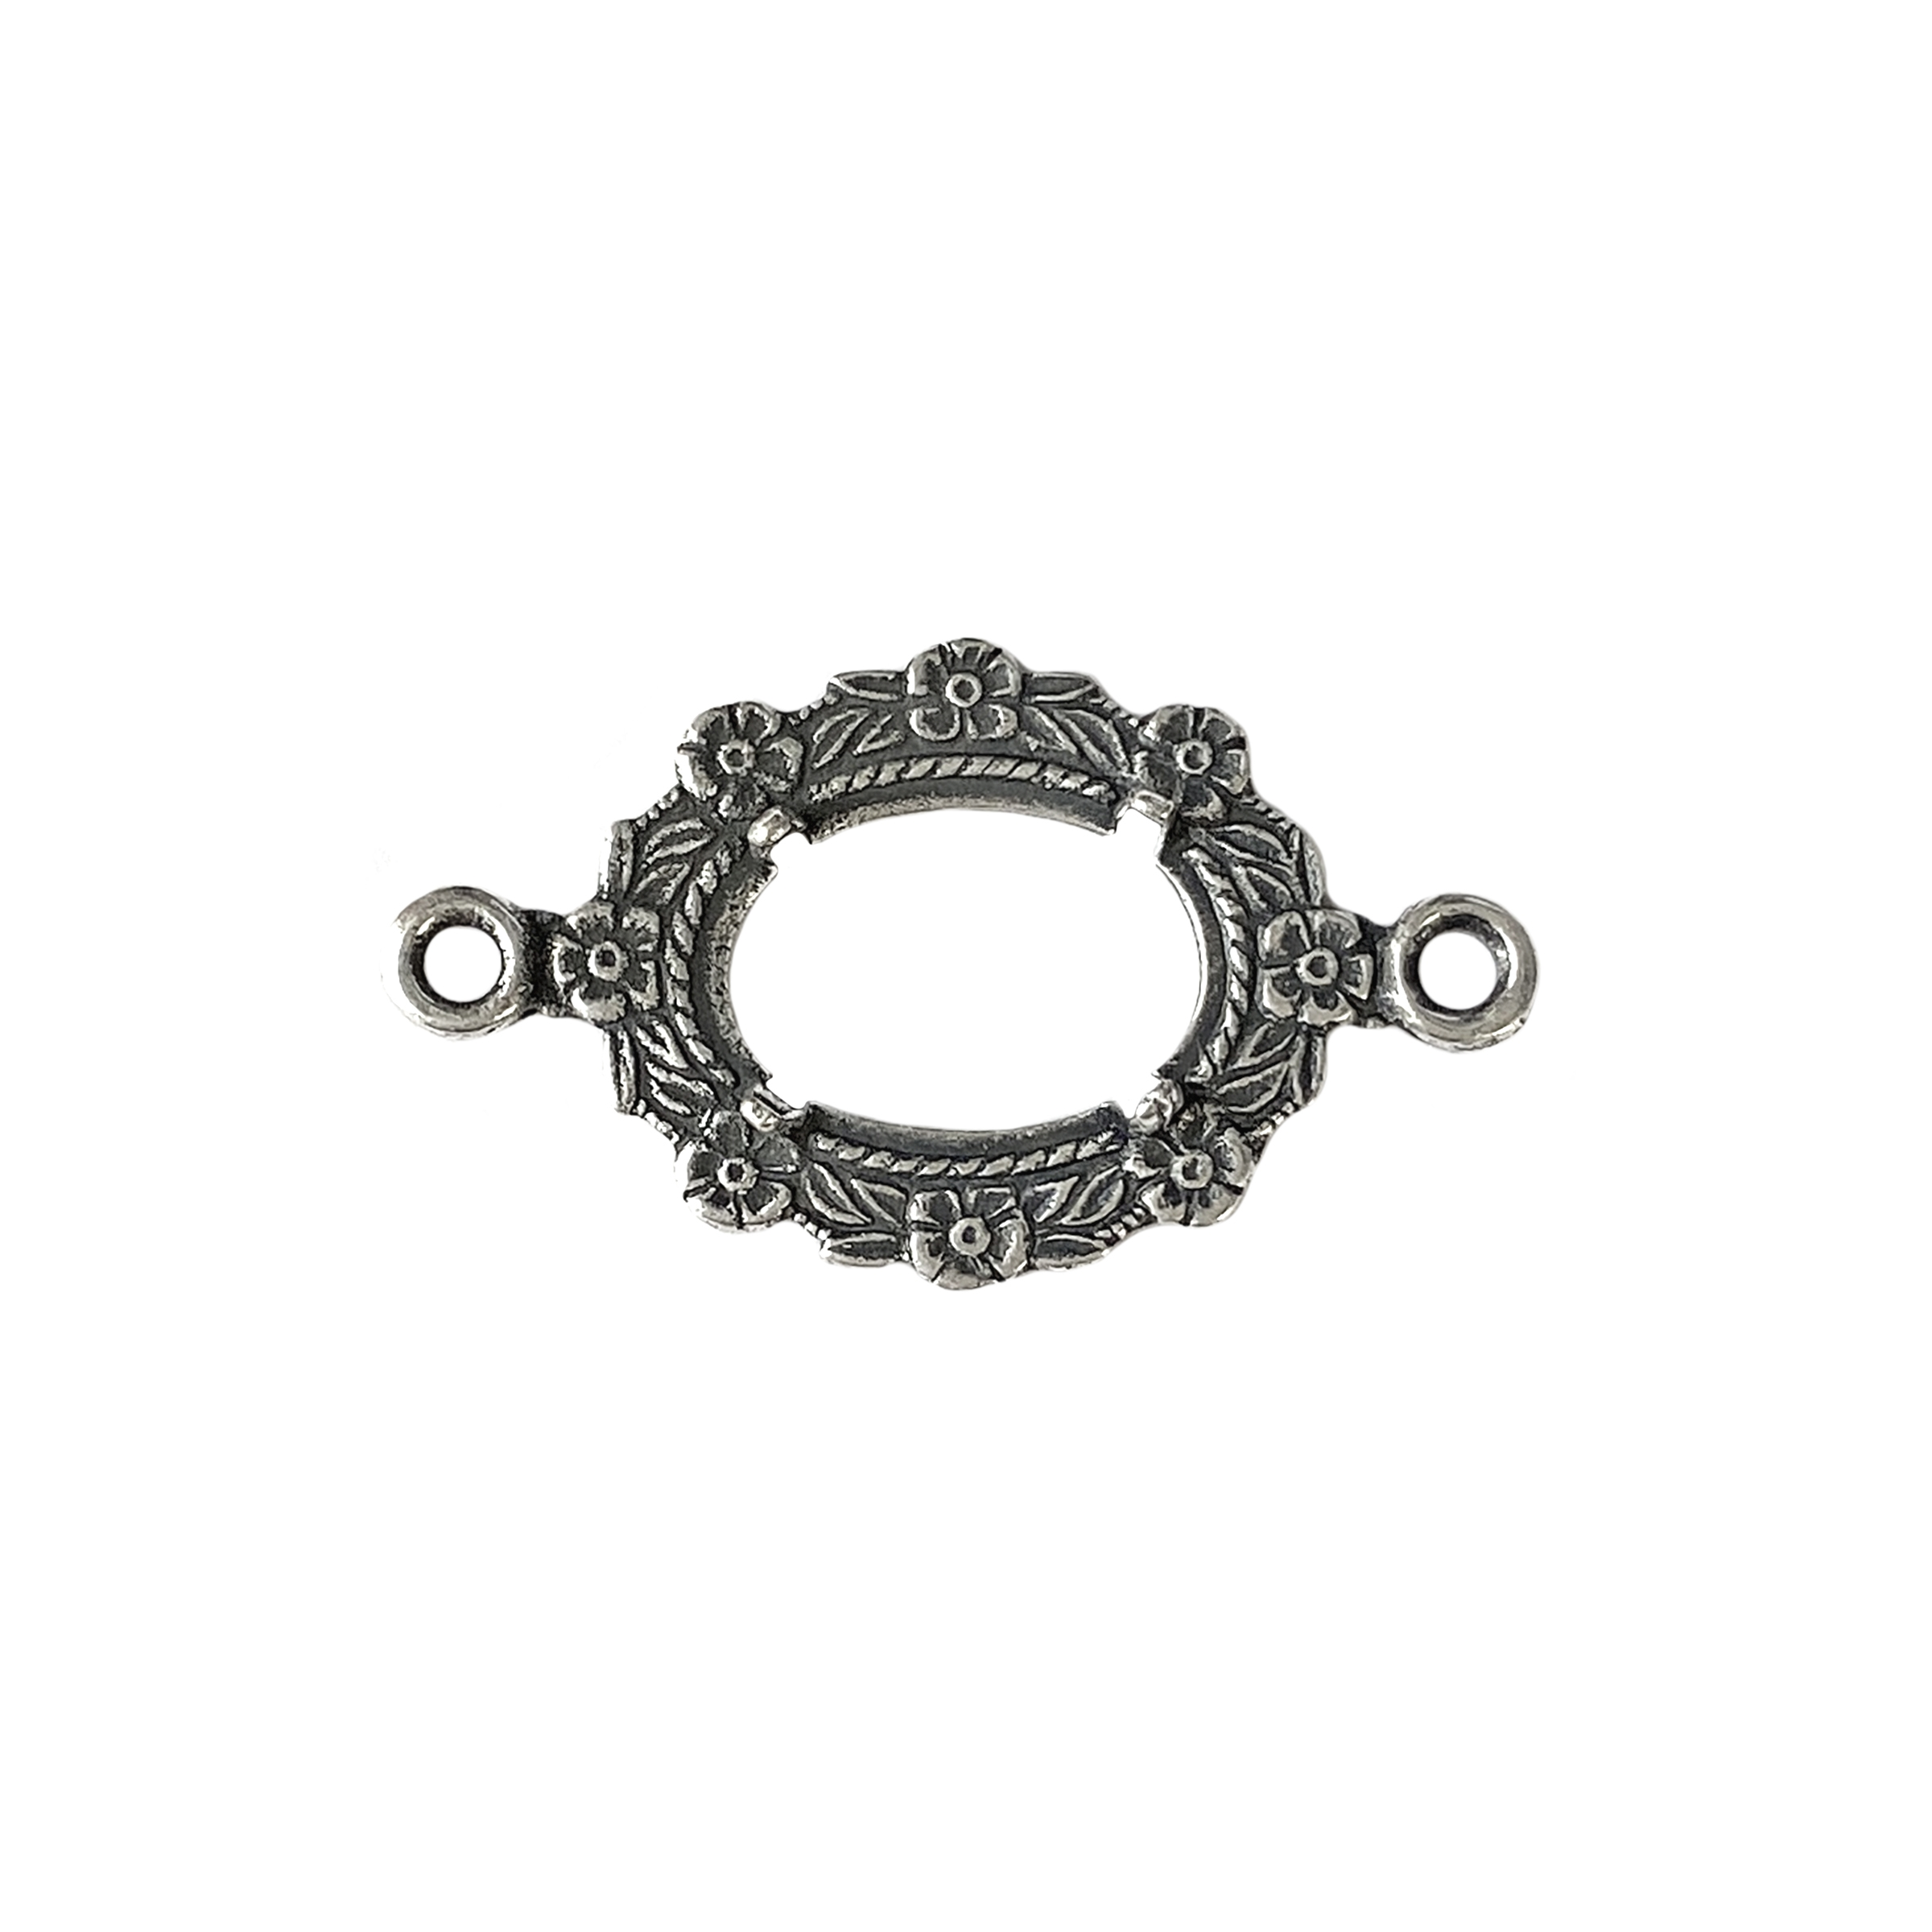 backless bezel connector, connector, silverware silver plated, antique silver, bezel, bezel connector, backless bezel, brass, stamping, US-made, jewelry supplies, vintage supplies, floral motif, B'sue Boutiques, jewelry findings, jewelry making, 01666